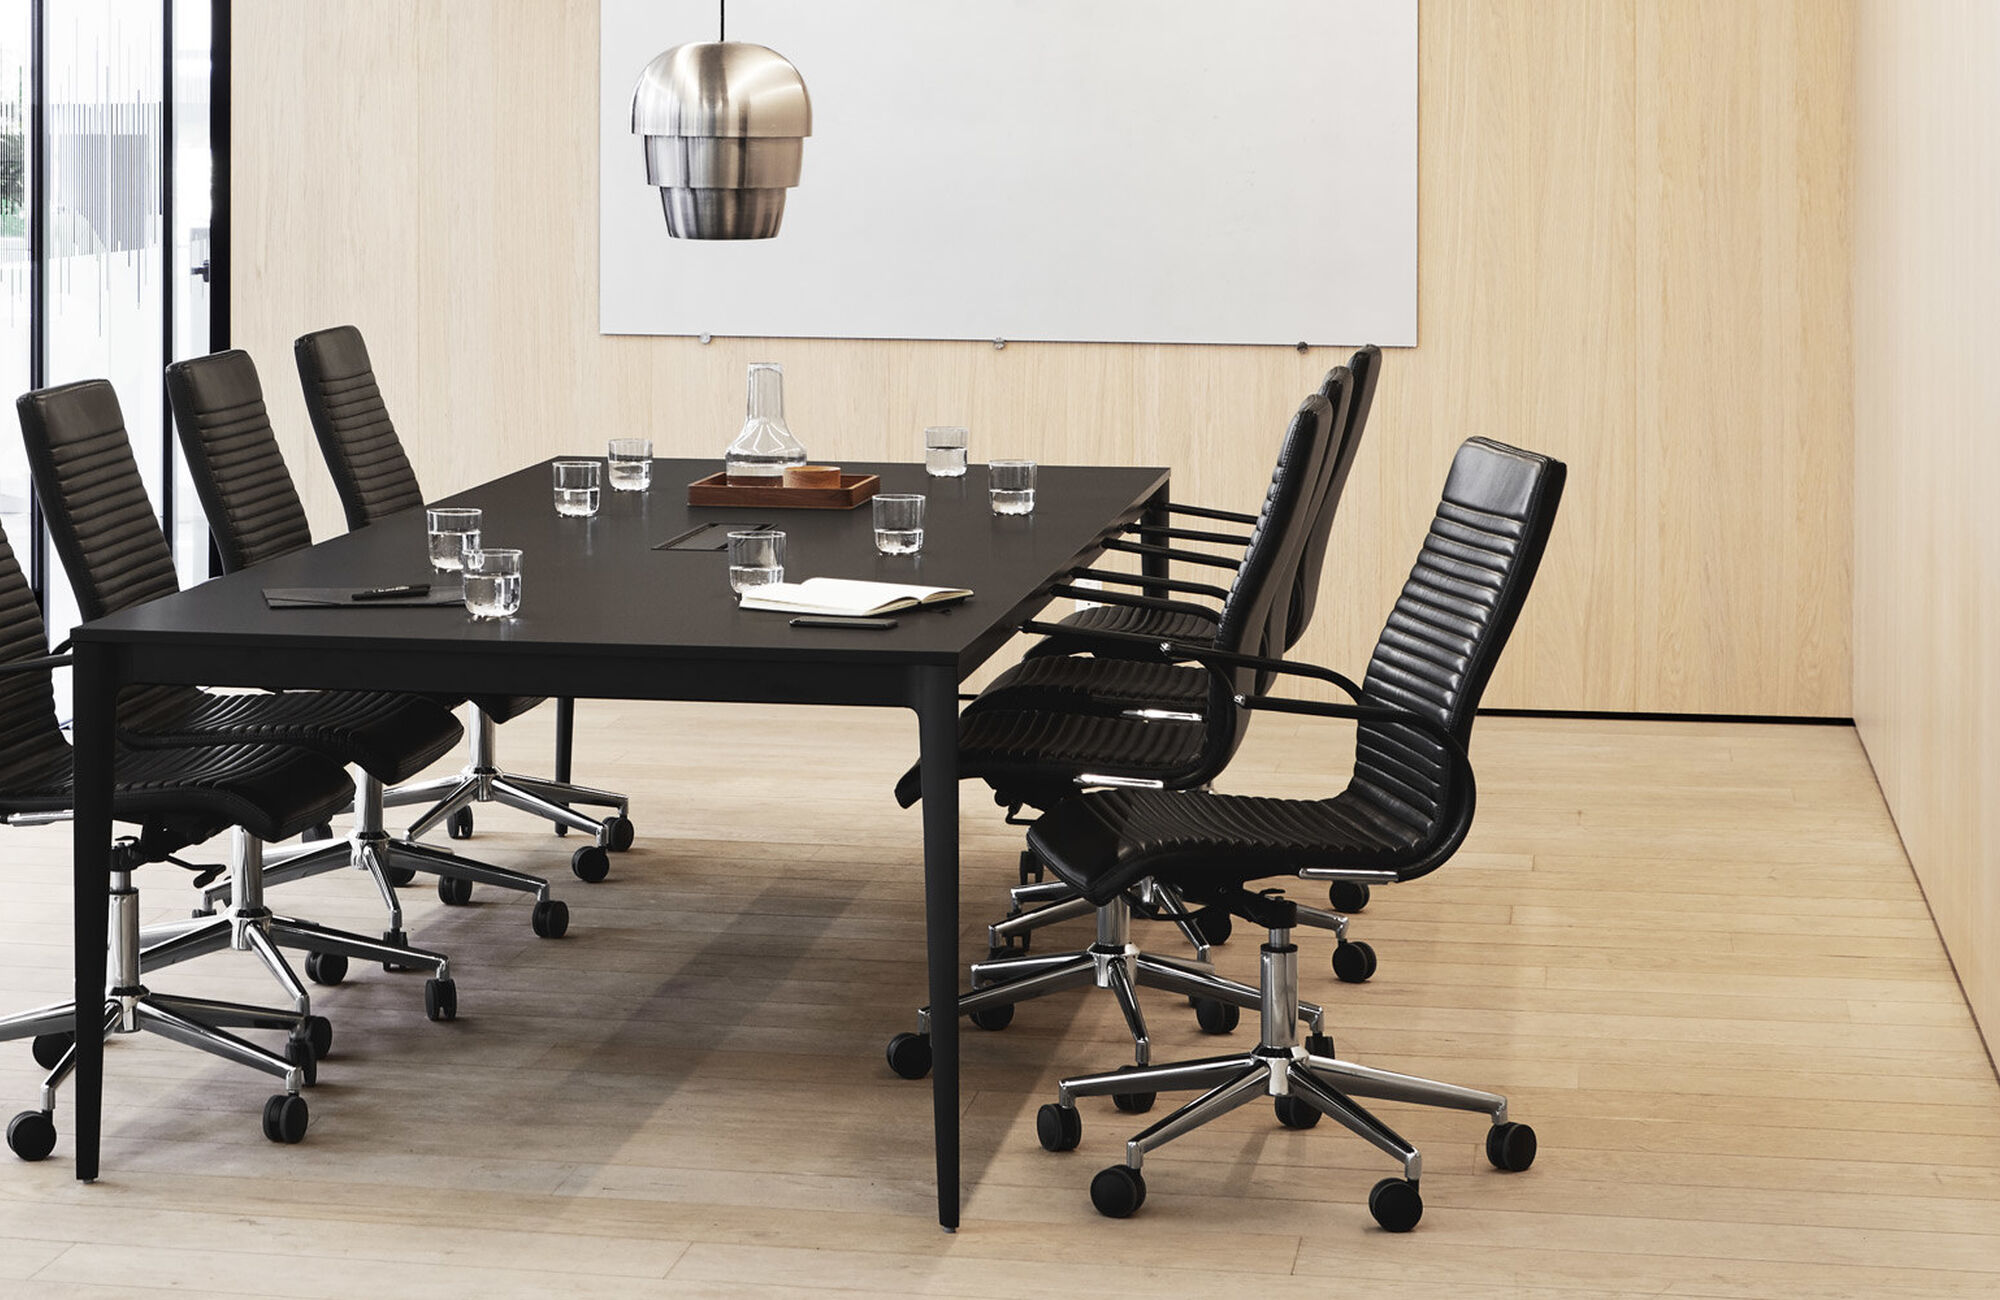 Home office chairs - Ferrara chair